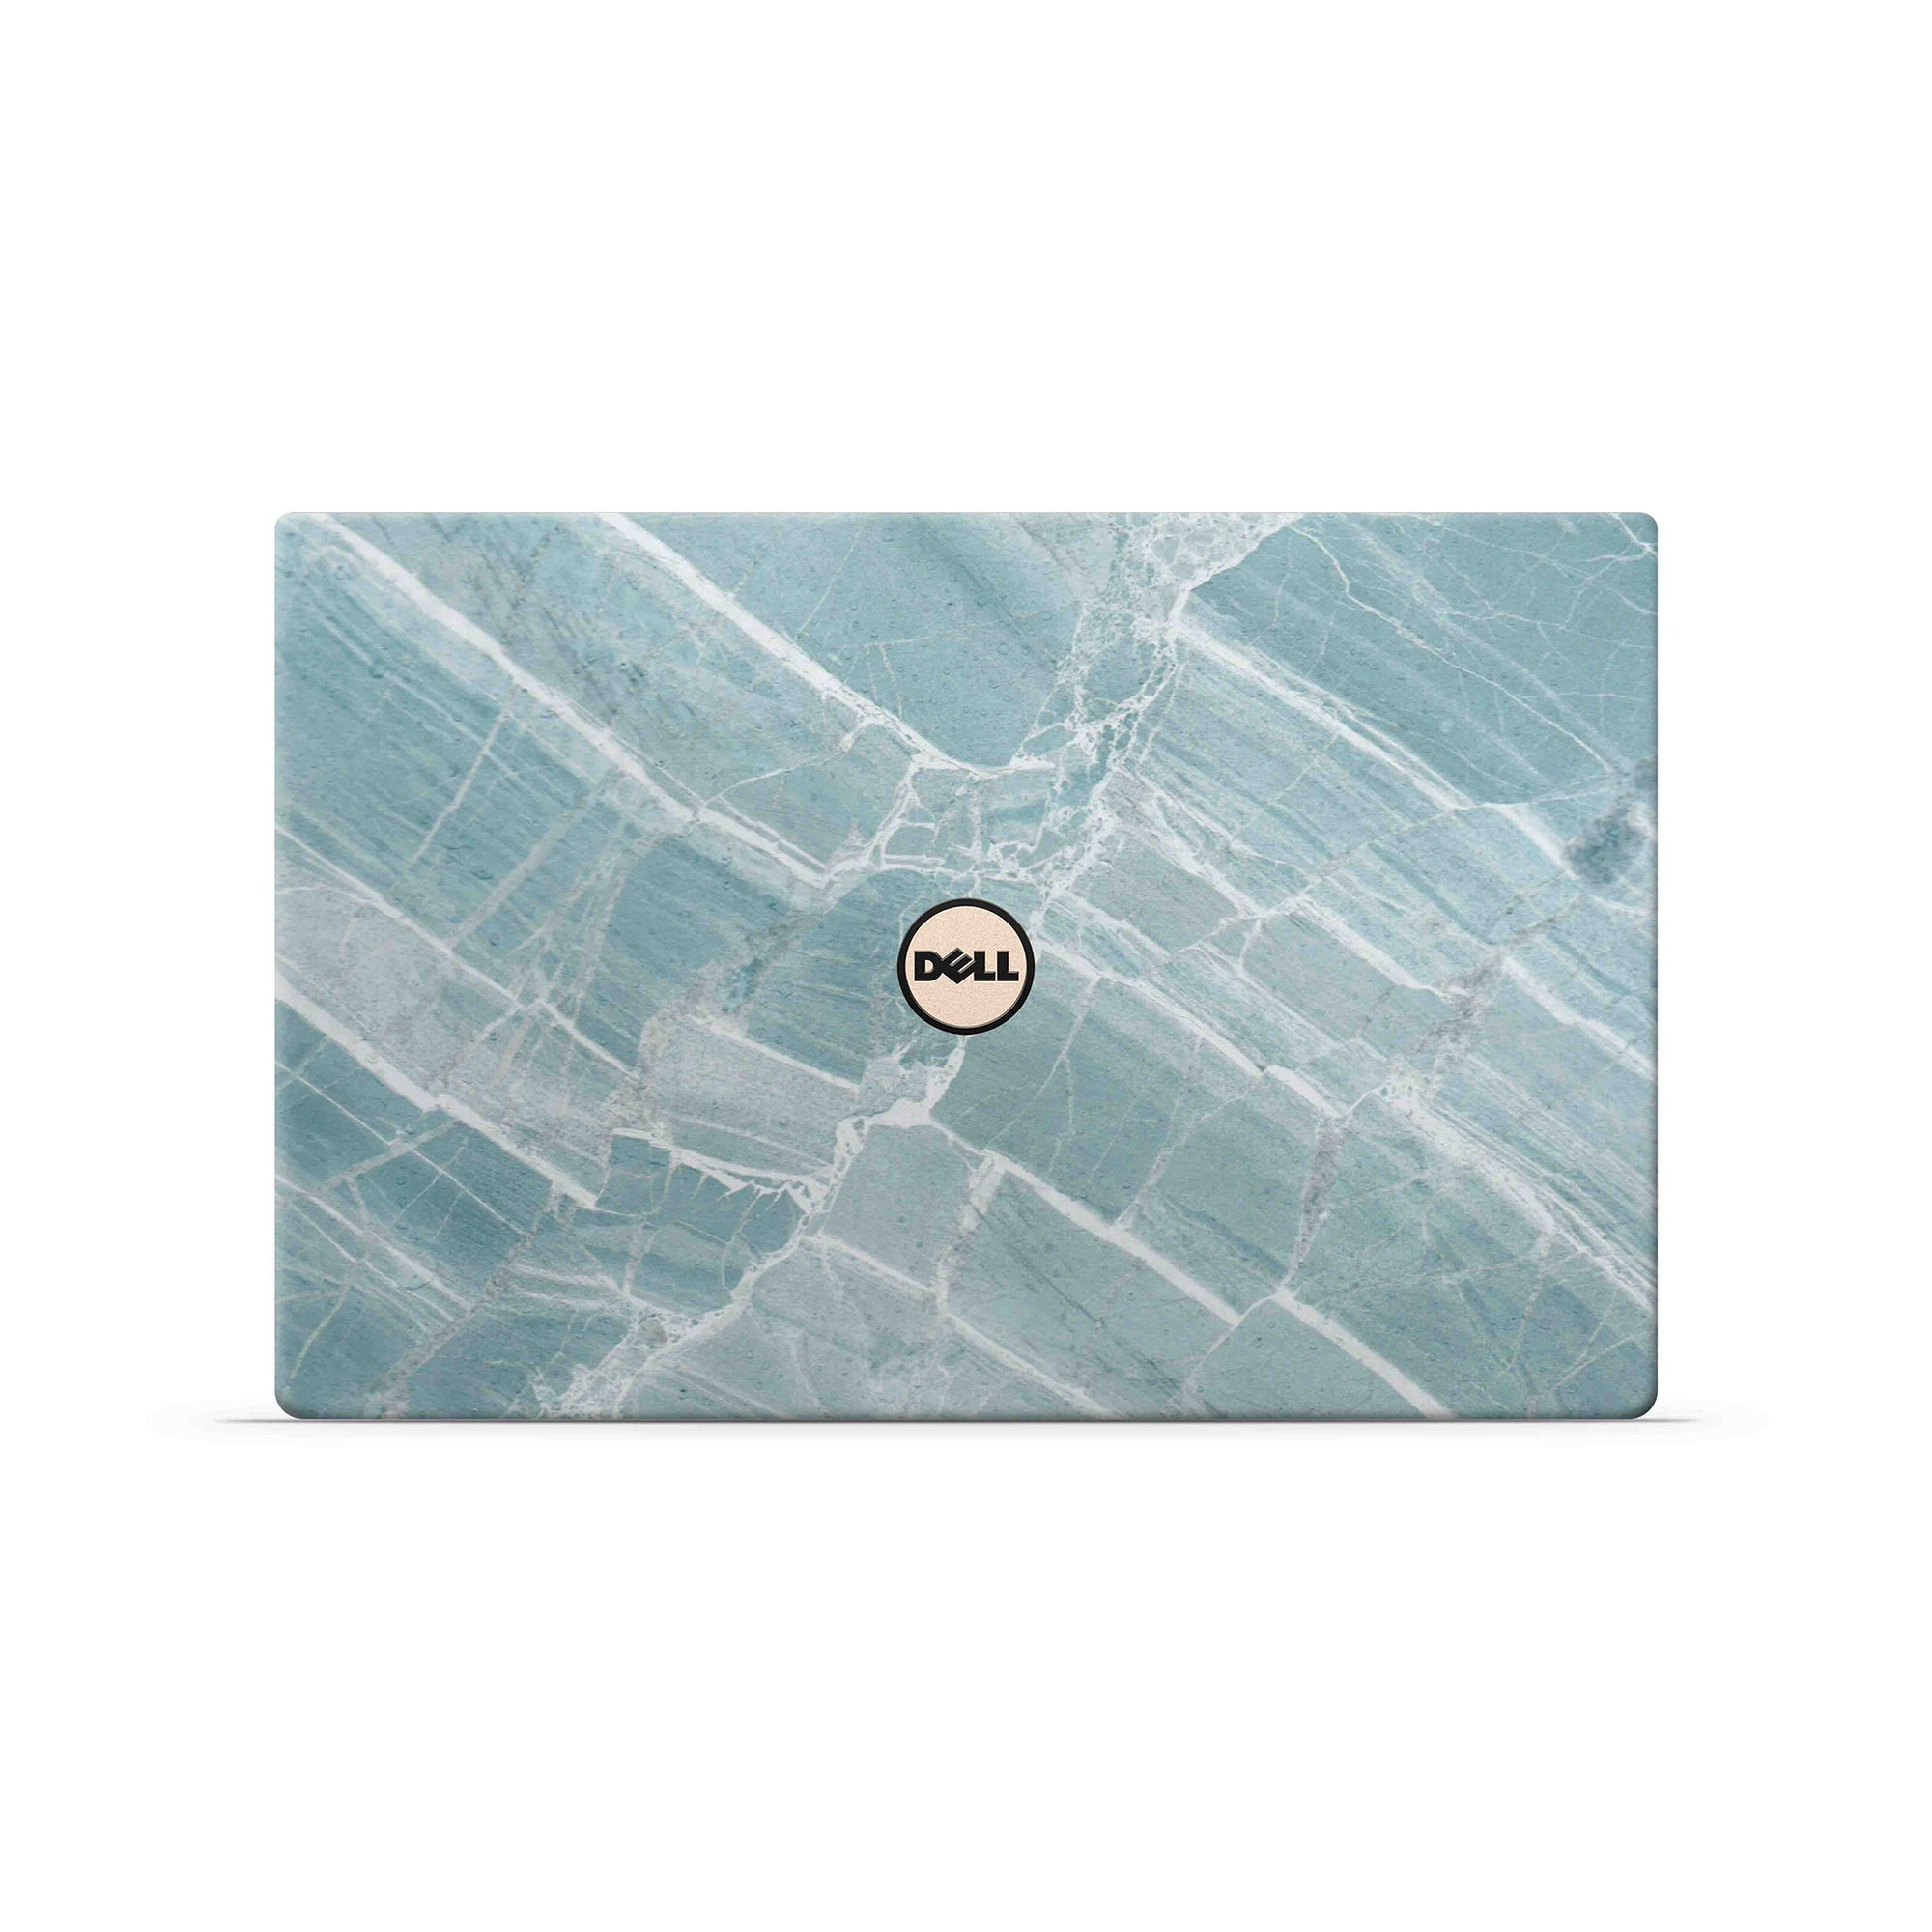 Mint Marble XPS 13 (9300) Skin